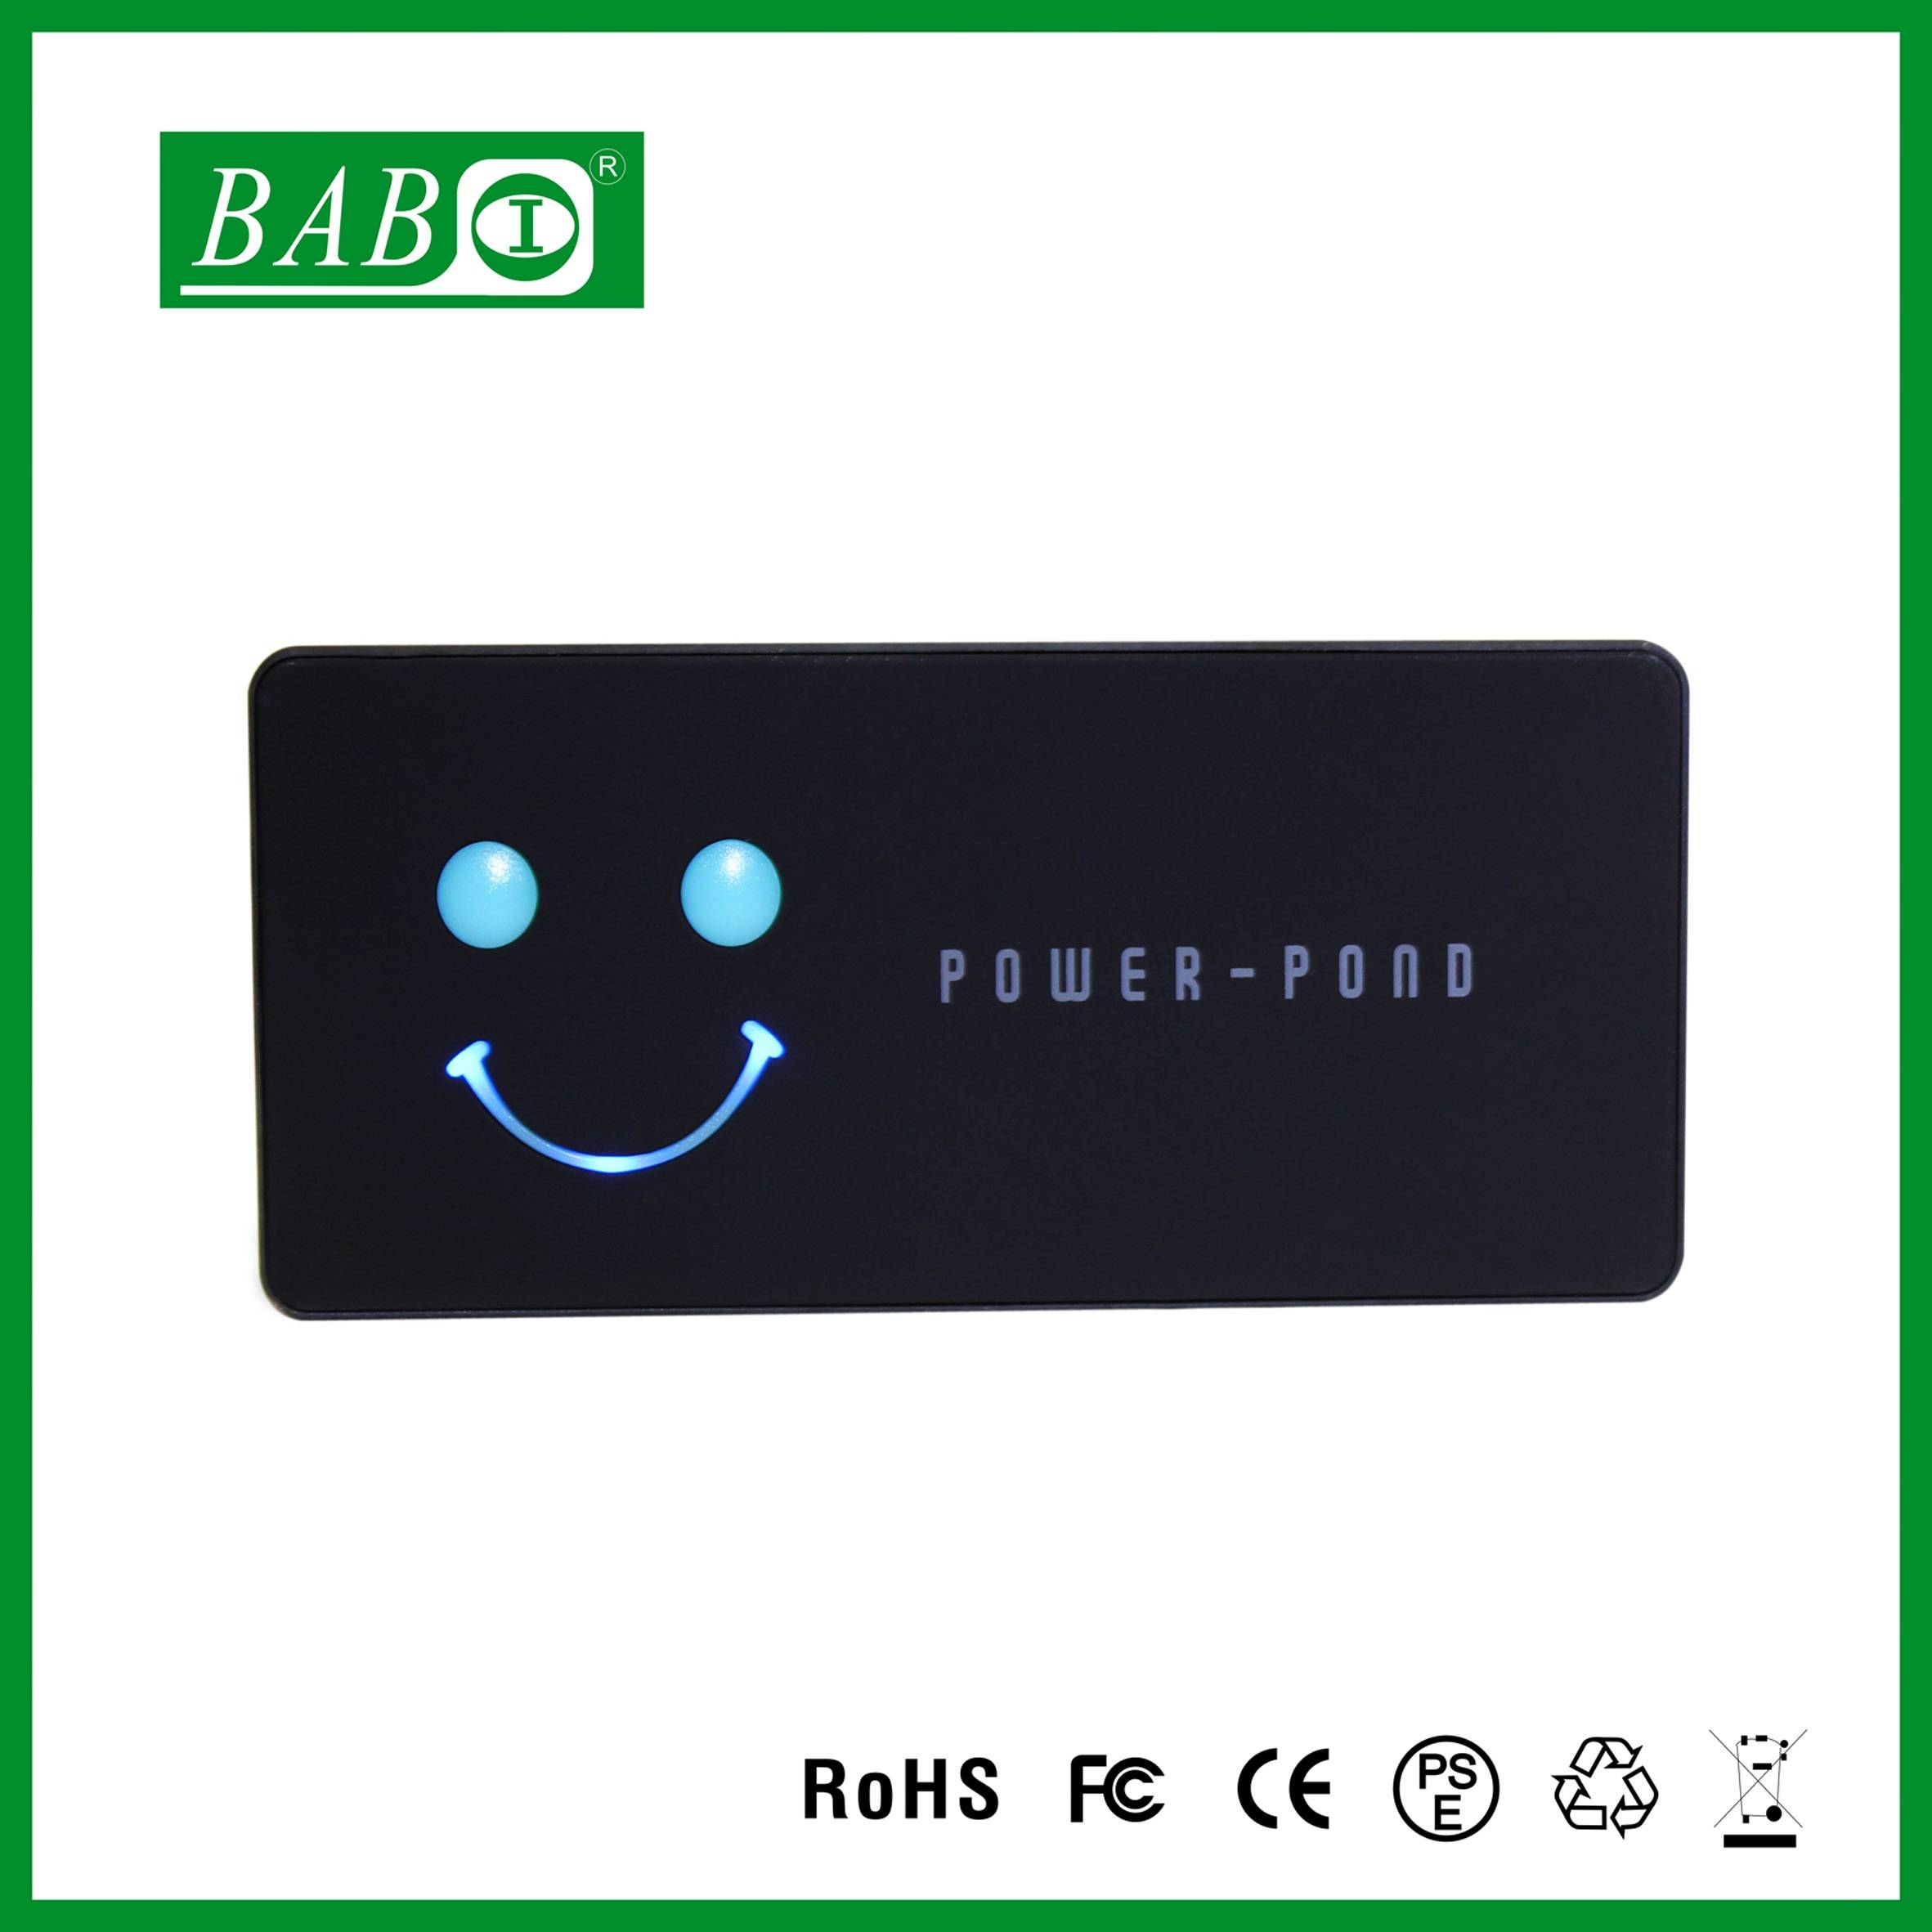 FCC/ ROHS/ CE/ PSE power bank,3750mAh ultra slim portable charger power bank for iPhone 6